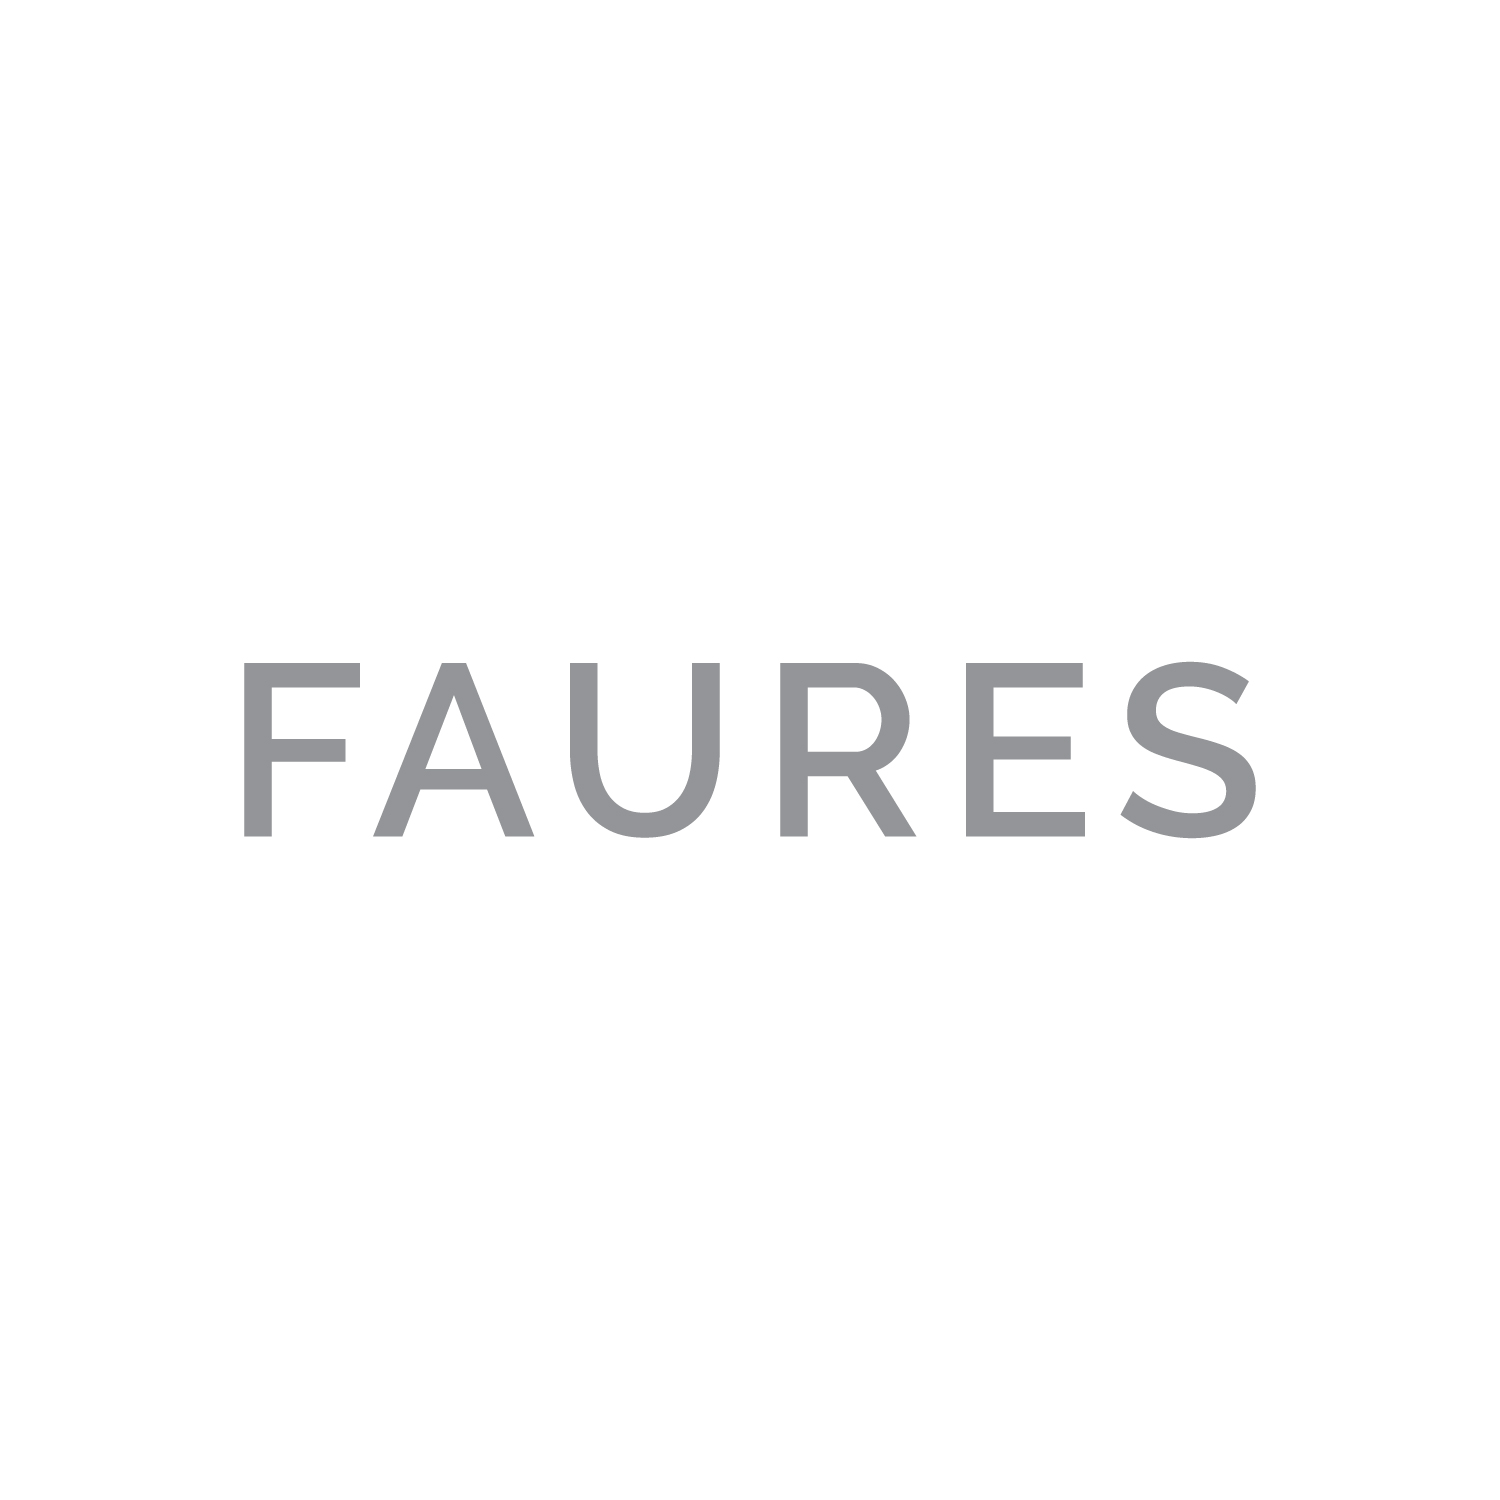 FAURES